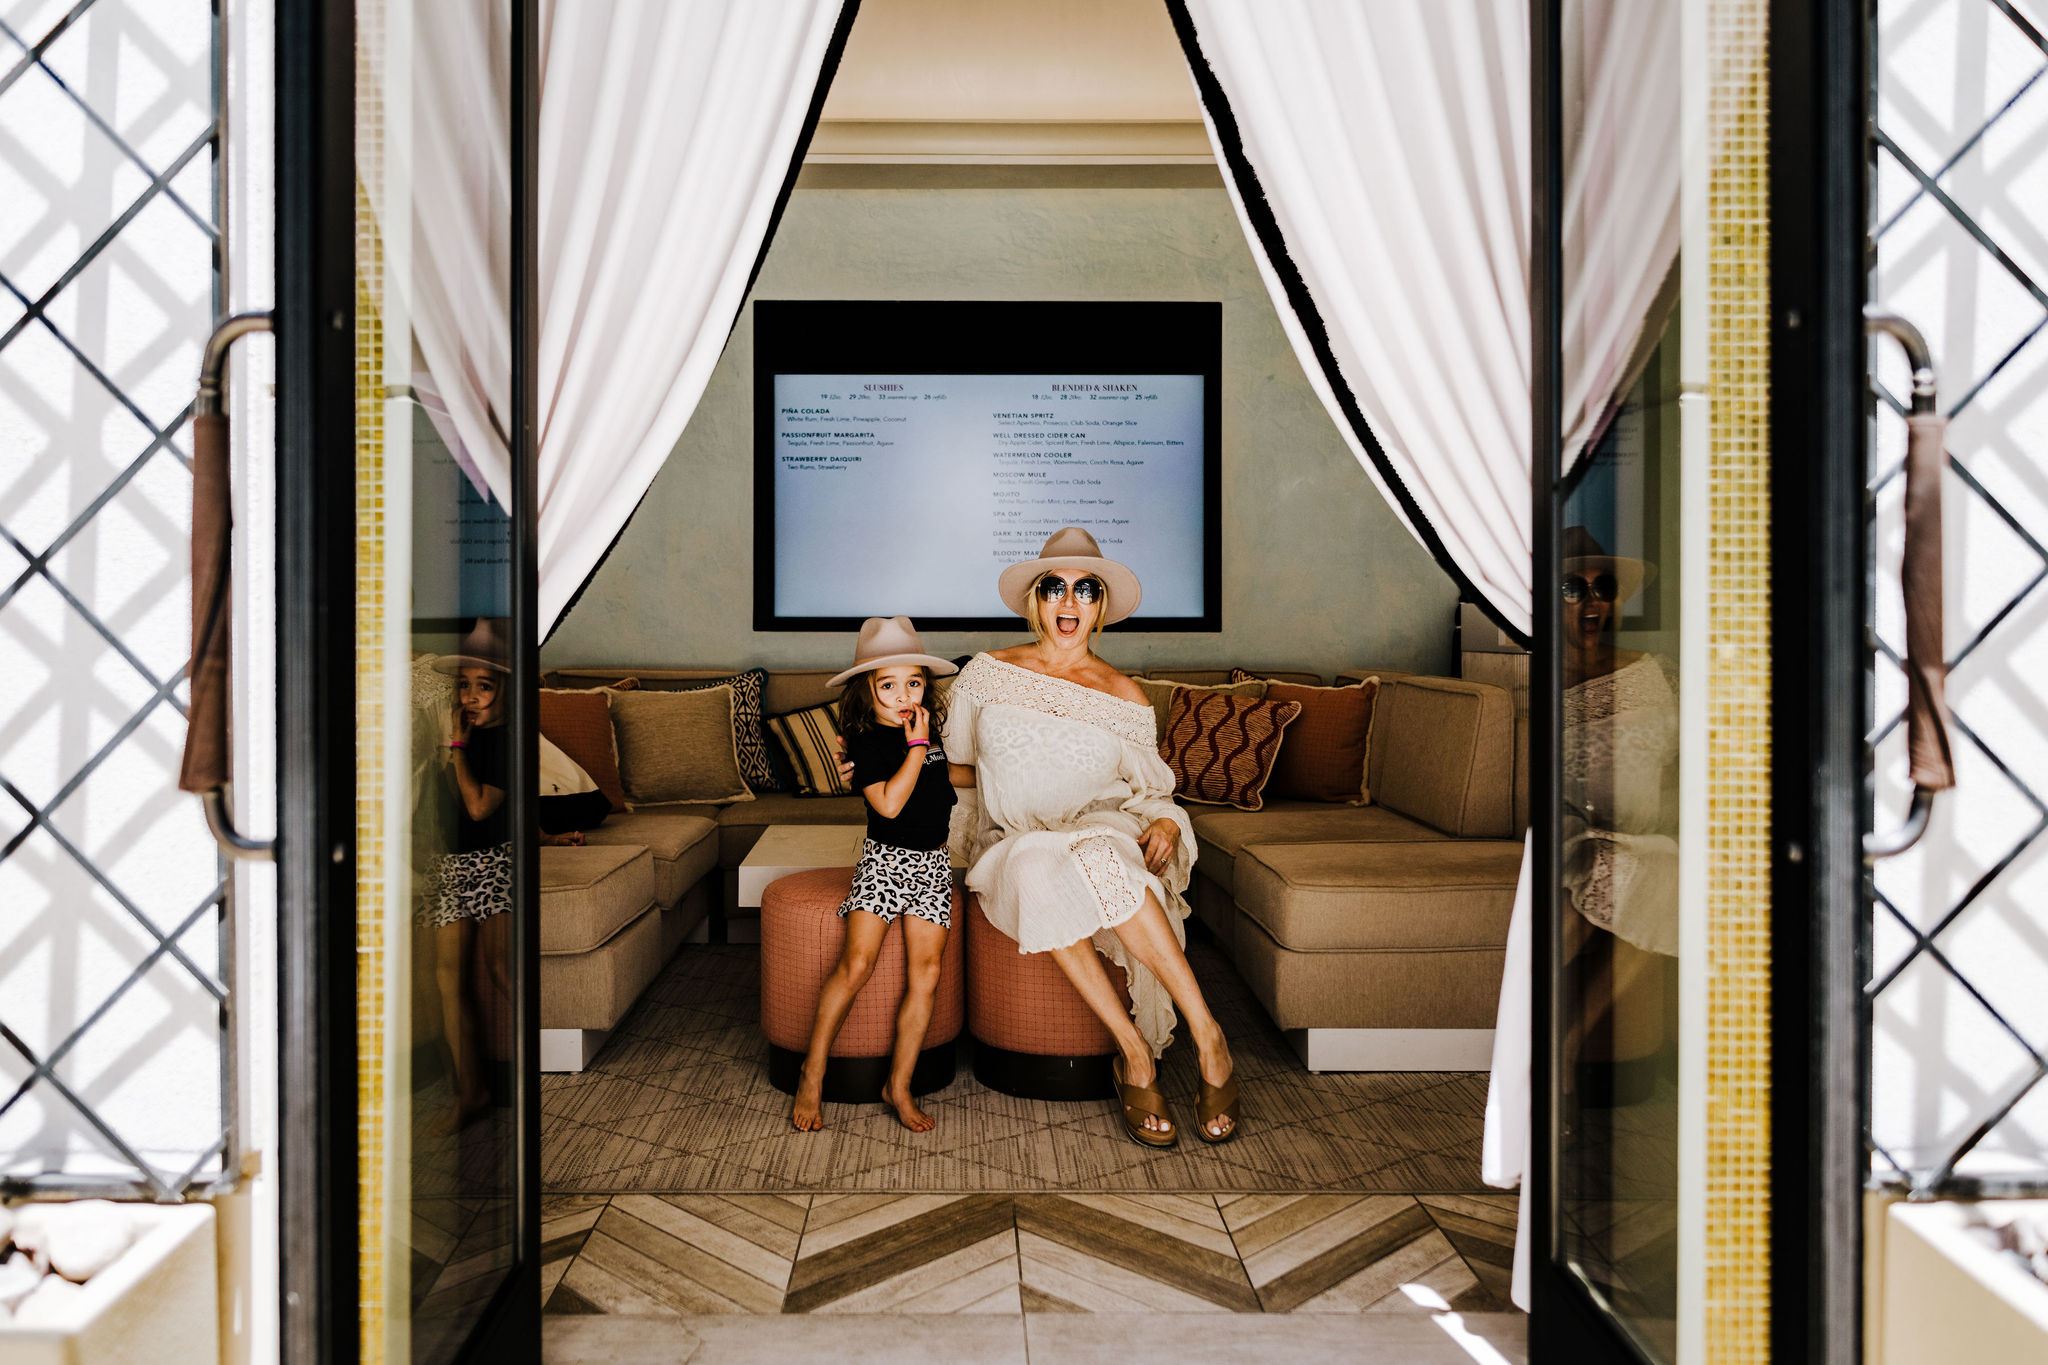 mom and child in pool cabana